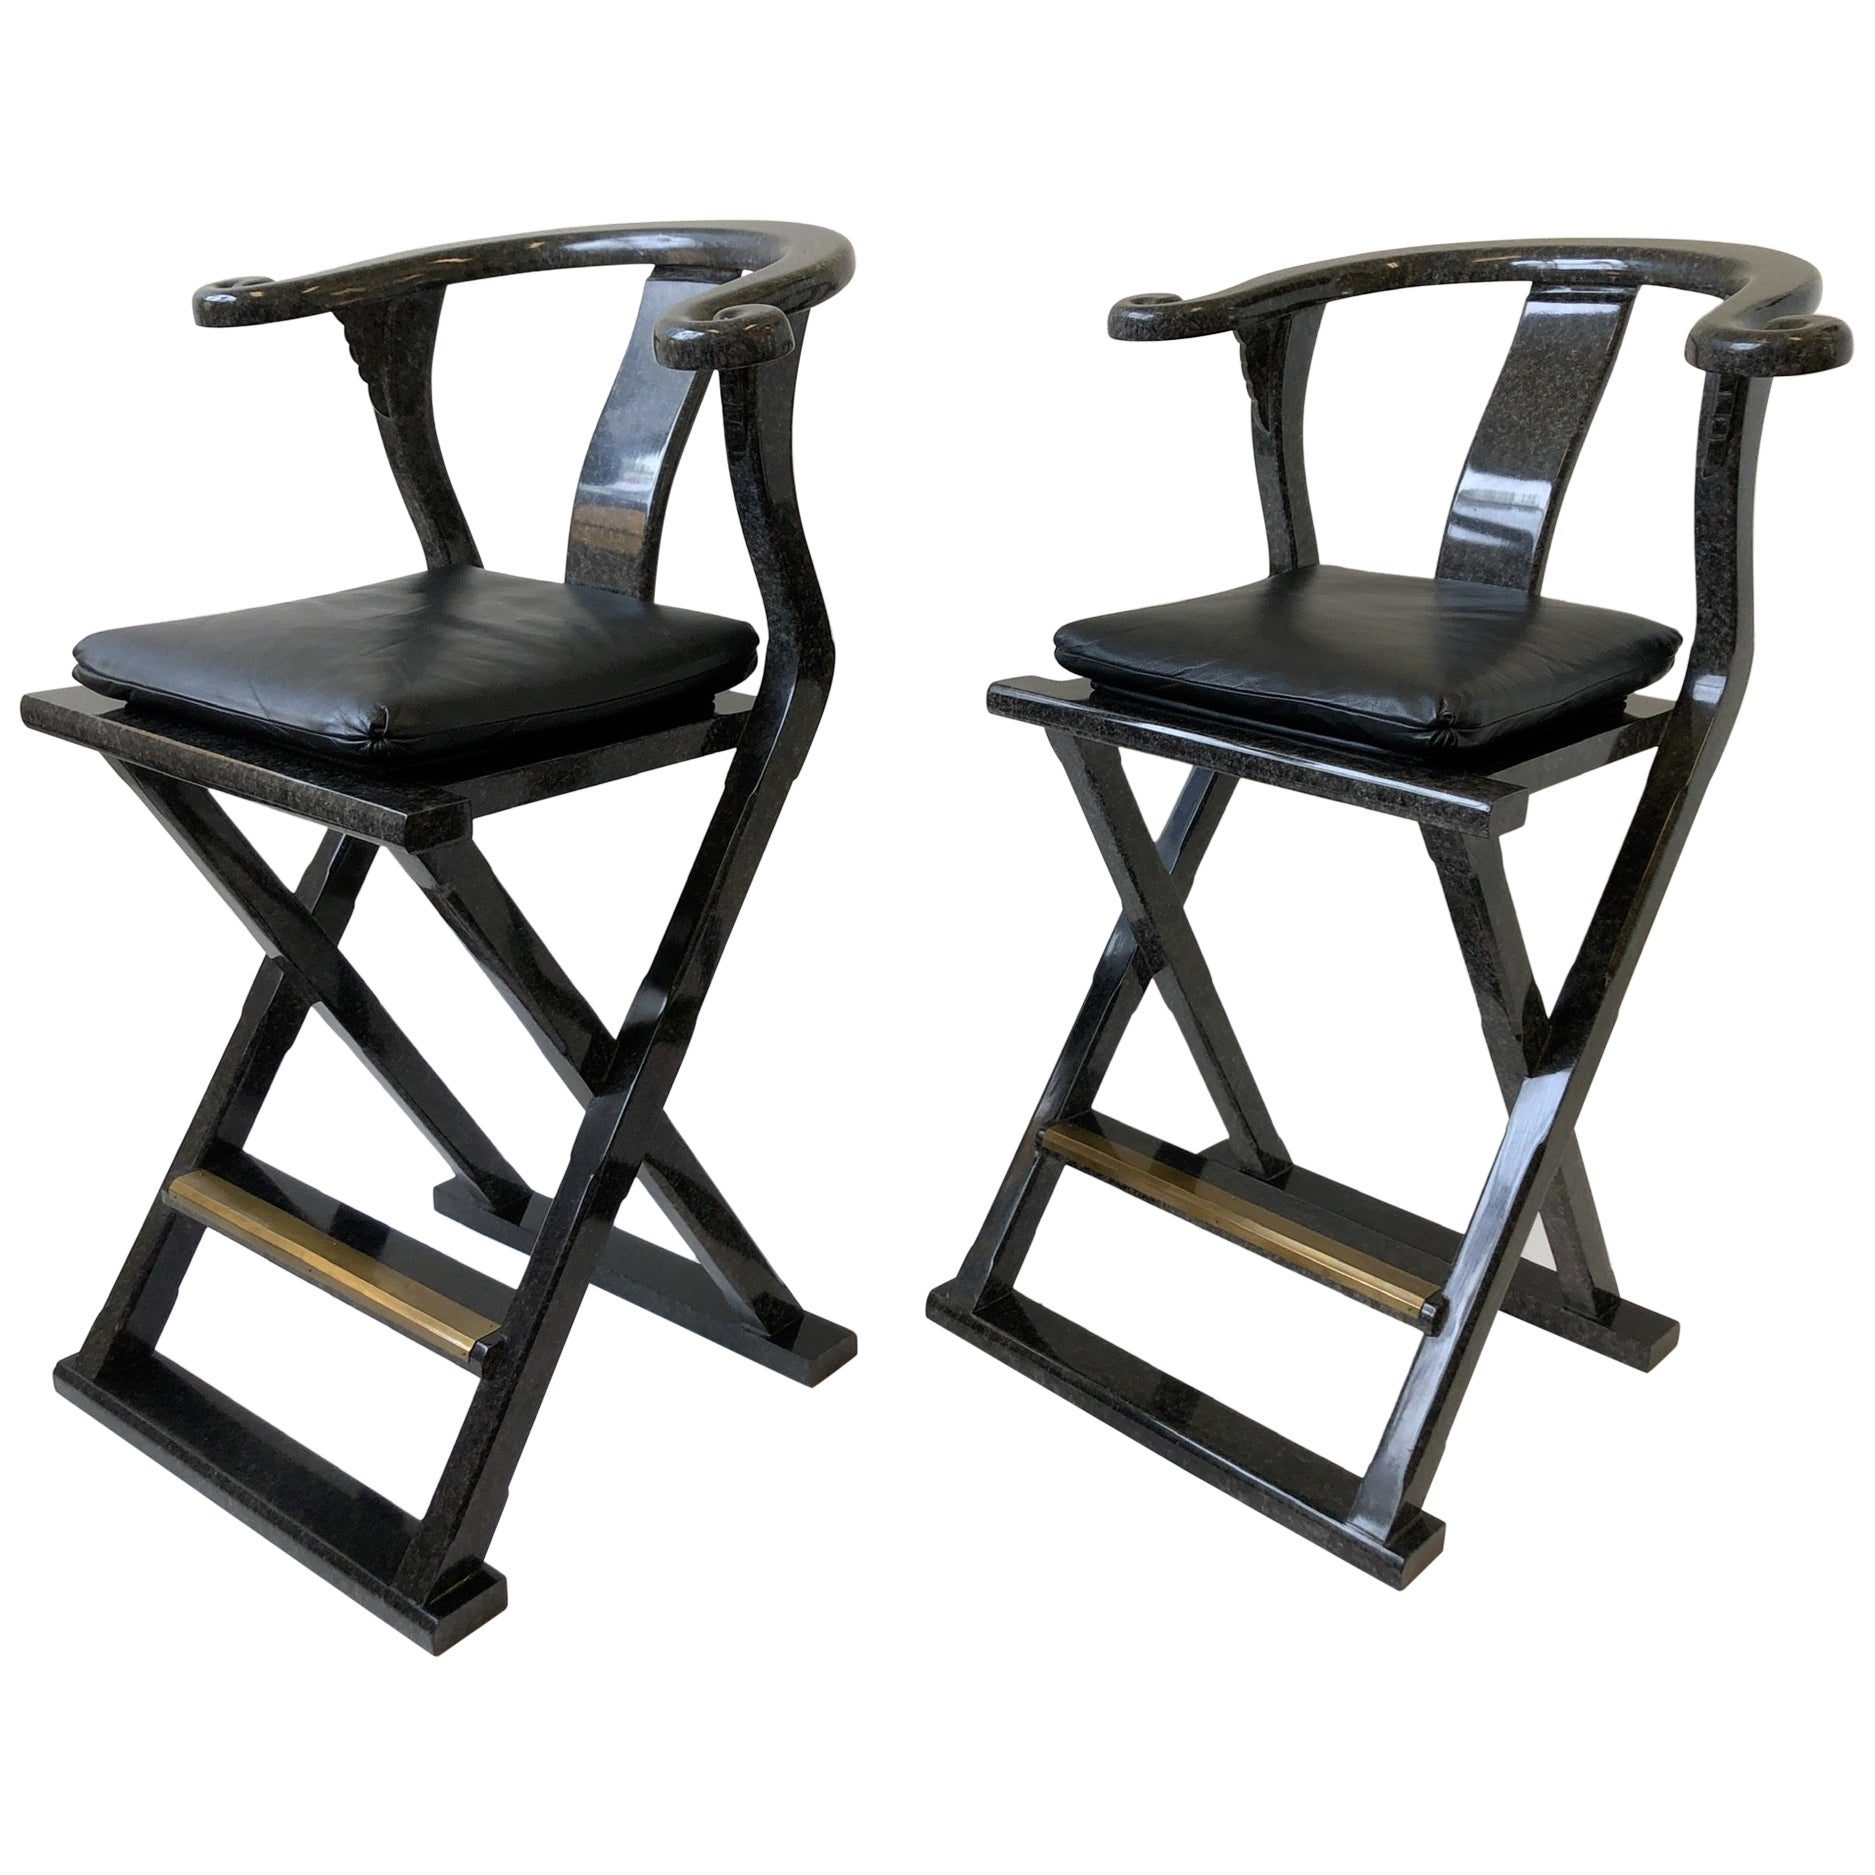 Pair of Lacquered and Leather Asia Style Barstools by Marge Carson